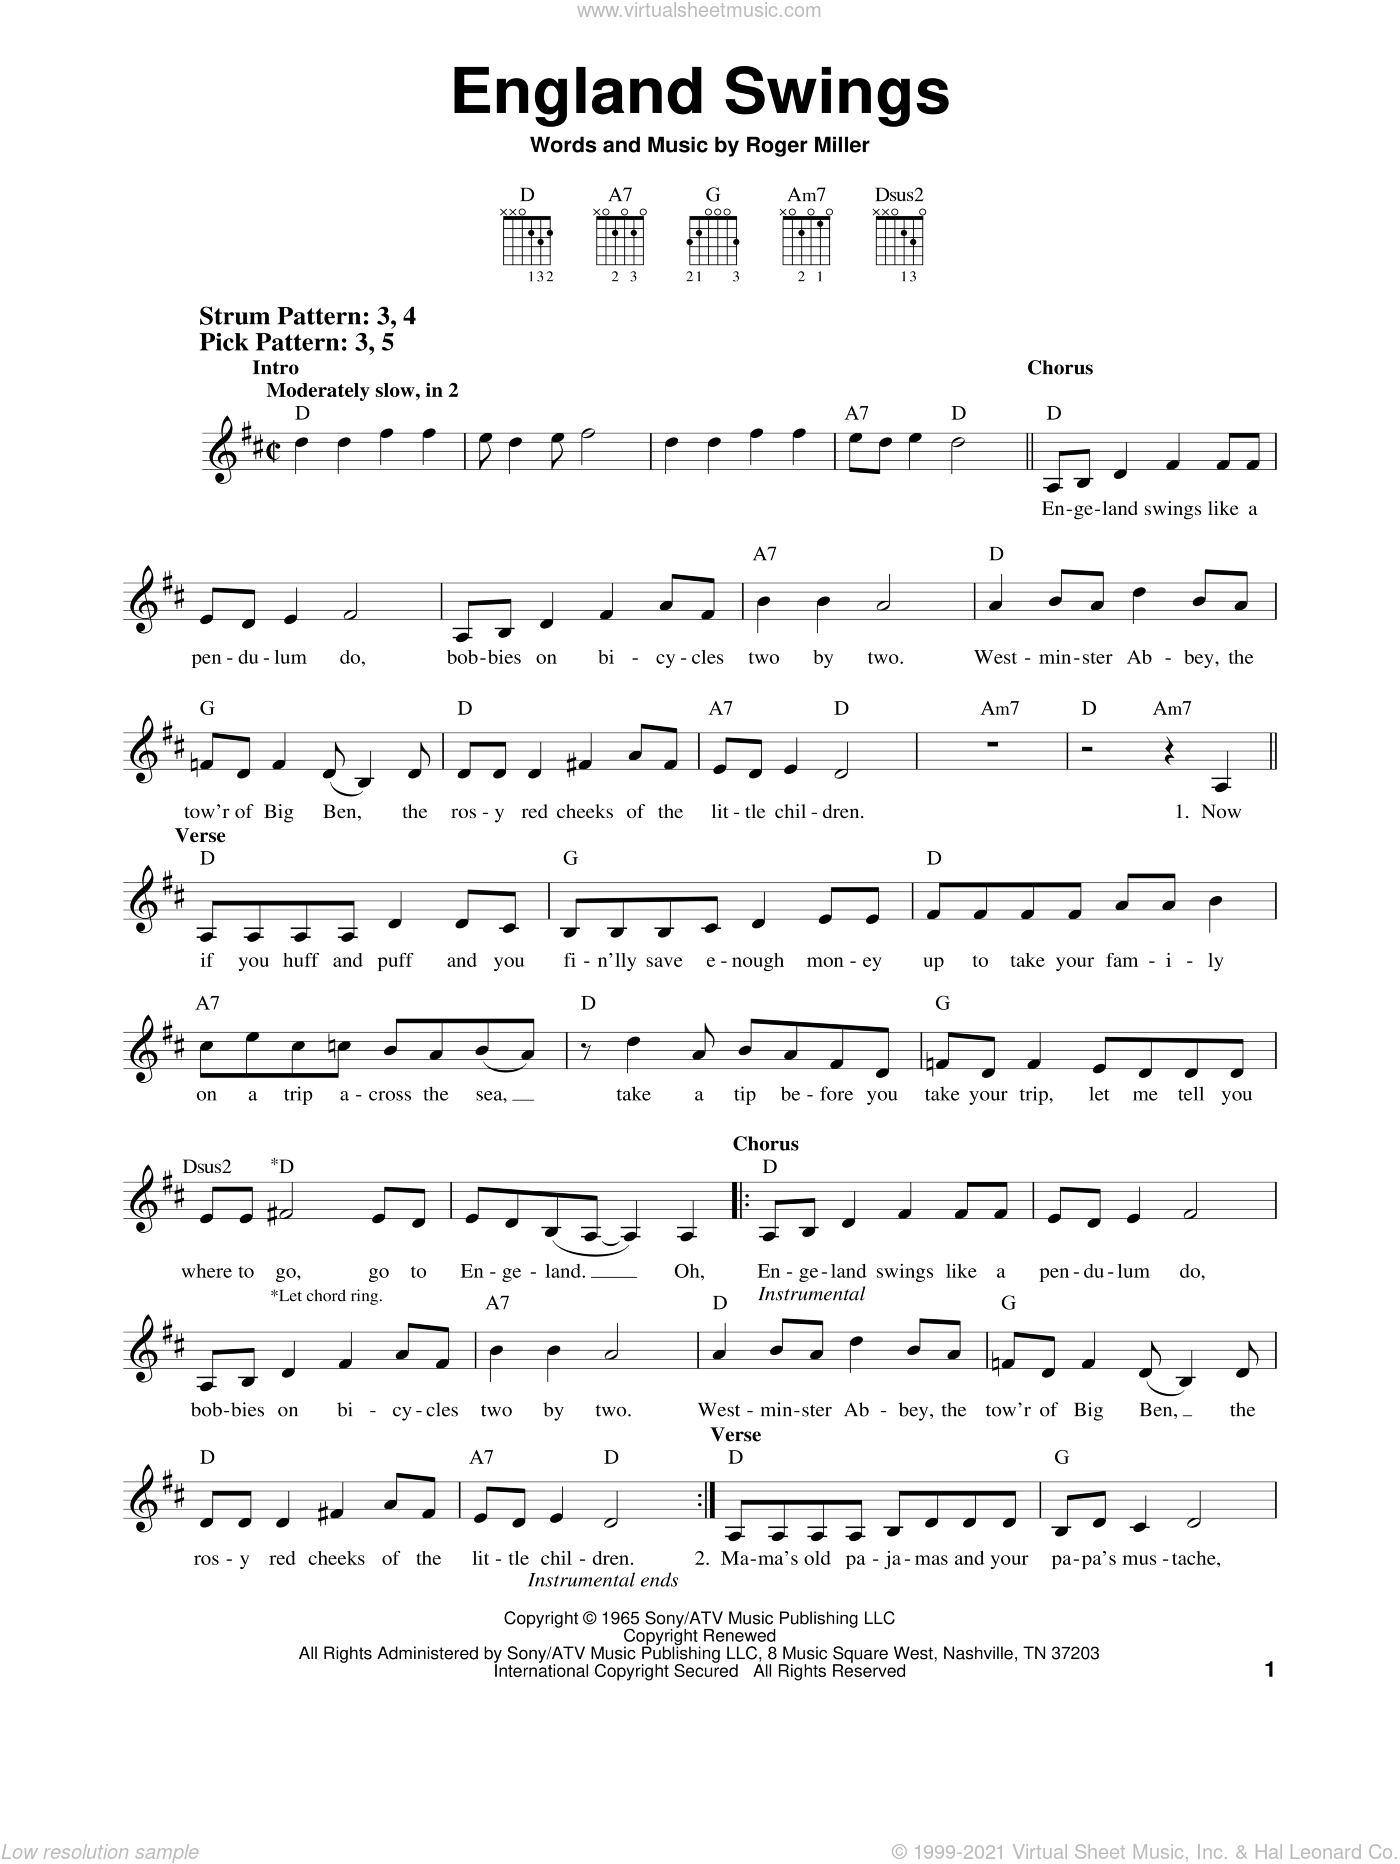 England Swings sheet music for guitar solo (chords) by Roger Miller